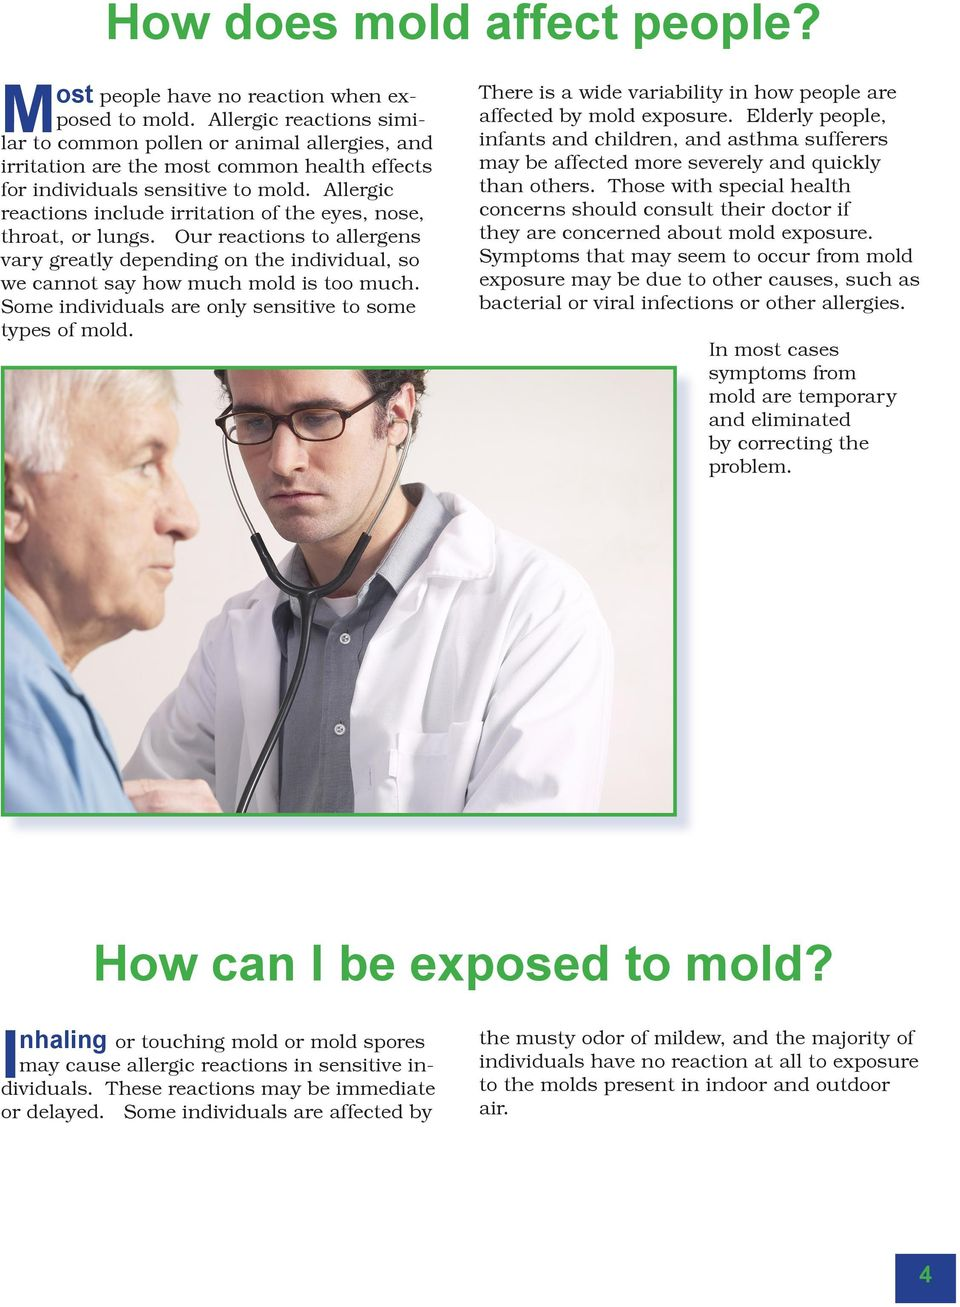 Allergic reactions include irritation of the eyes, nose, throat, or lungs. Our reactions to allergens vary greatly depending on the individual, so we cannot say how much mold is too much.